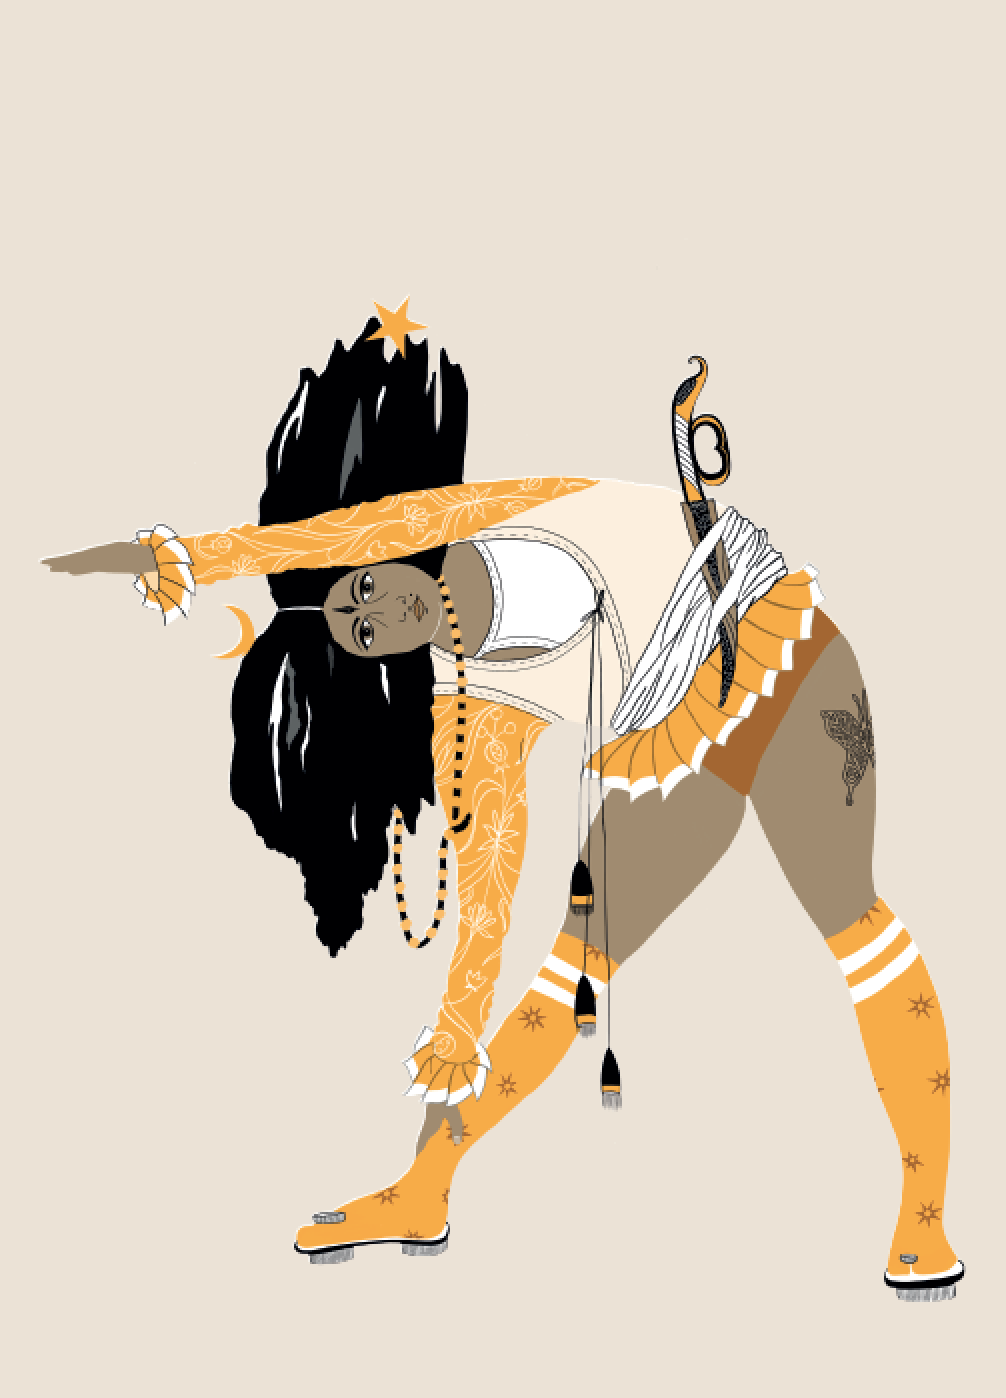 2019. Trikon ā sana (Triangle Pose) Digital print on paper 5 in. x 7 in.  Practiced wearing a shortened jama over dance leotards, knee-high tabis paired with padukas and a tucked-away inlayed dagger.   Purchase